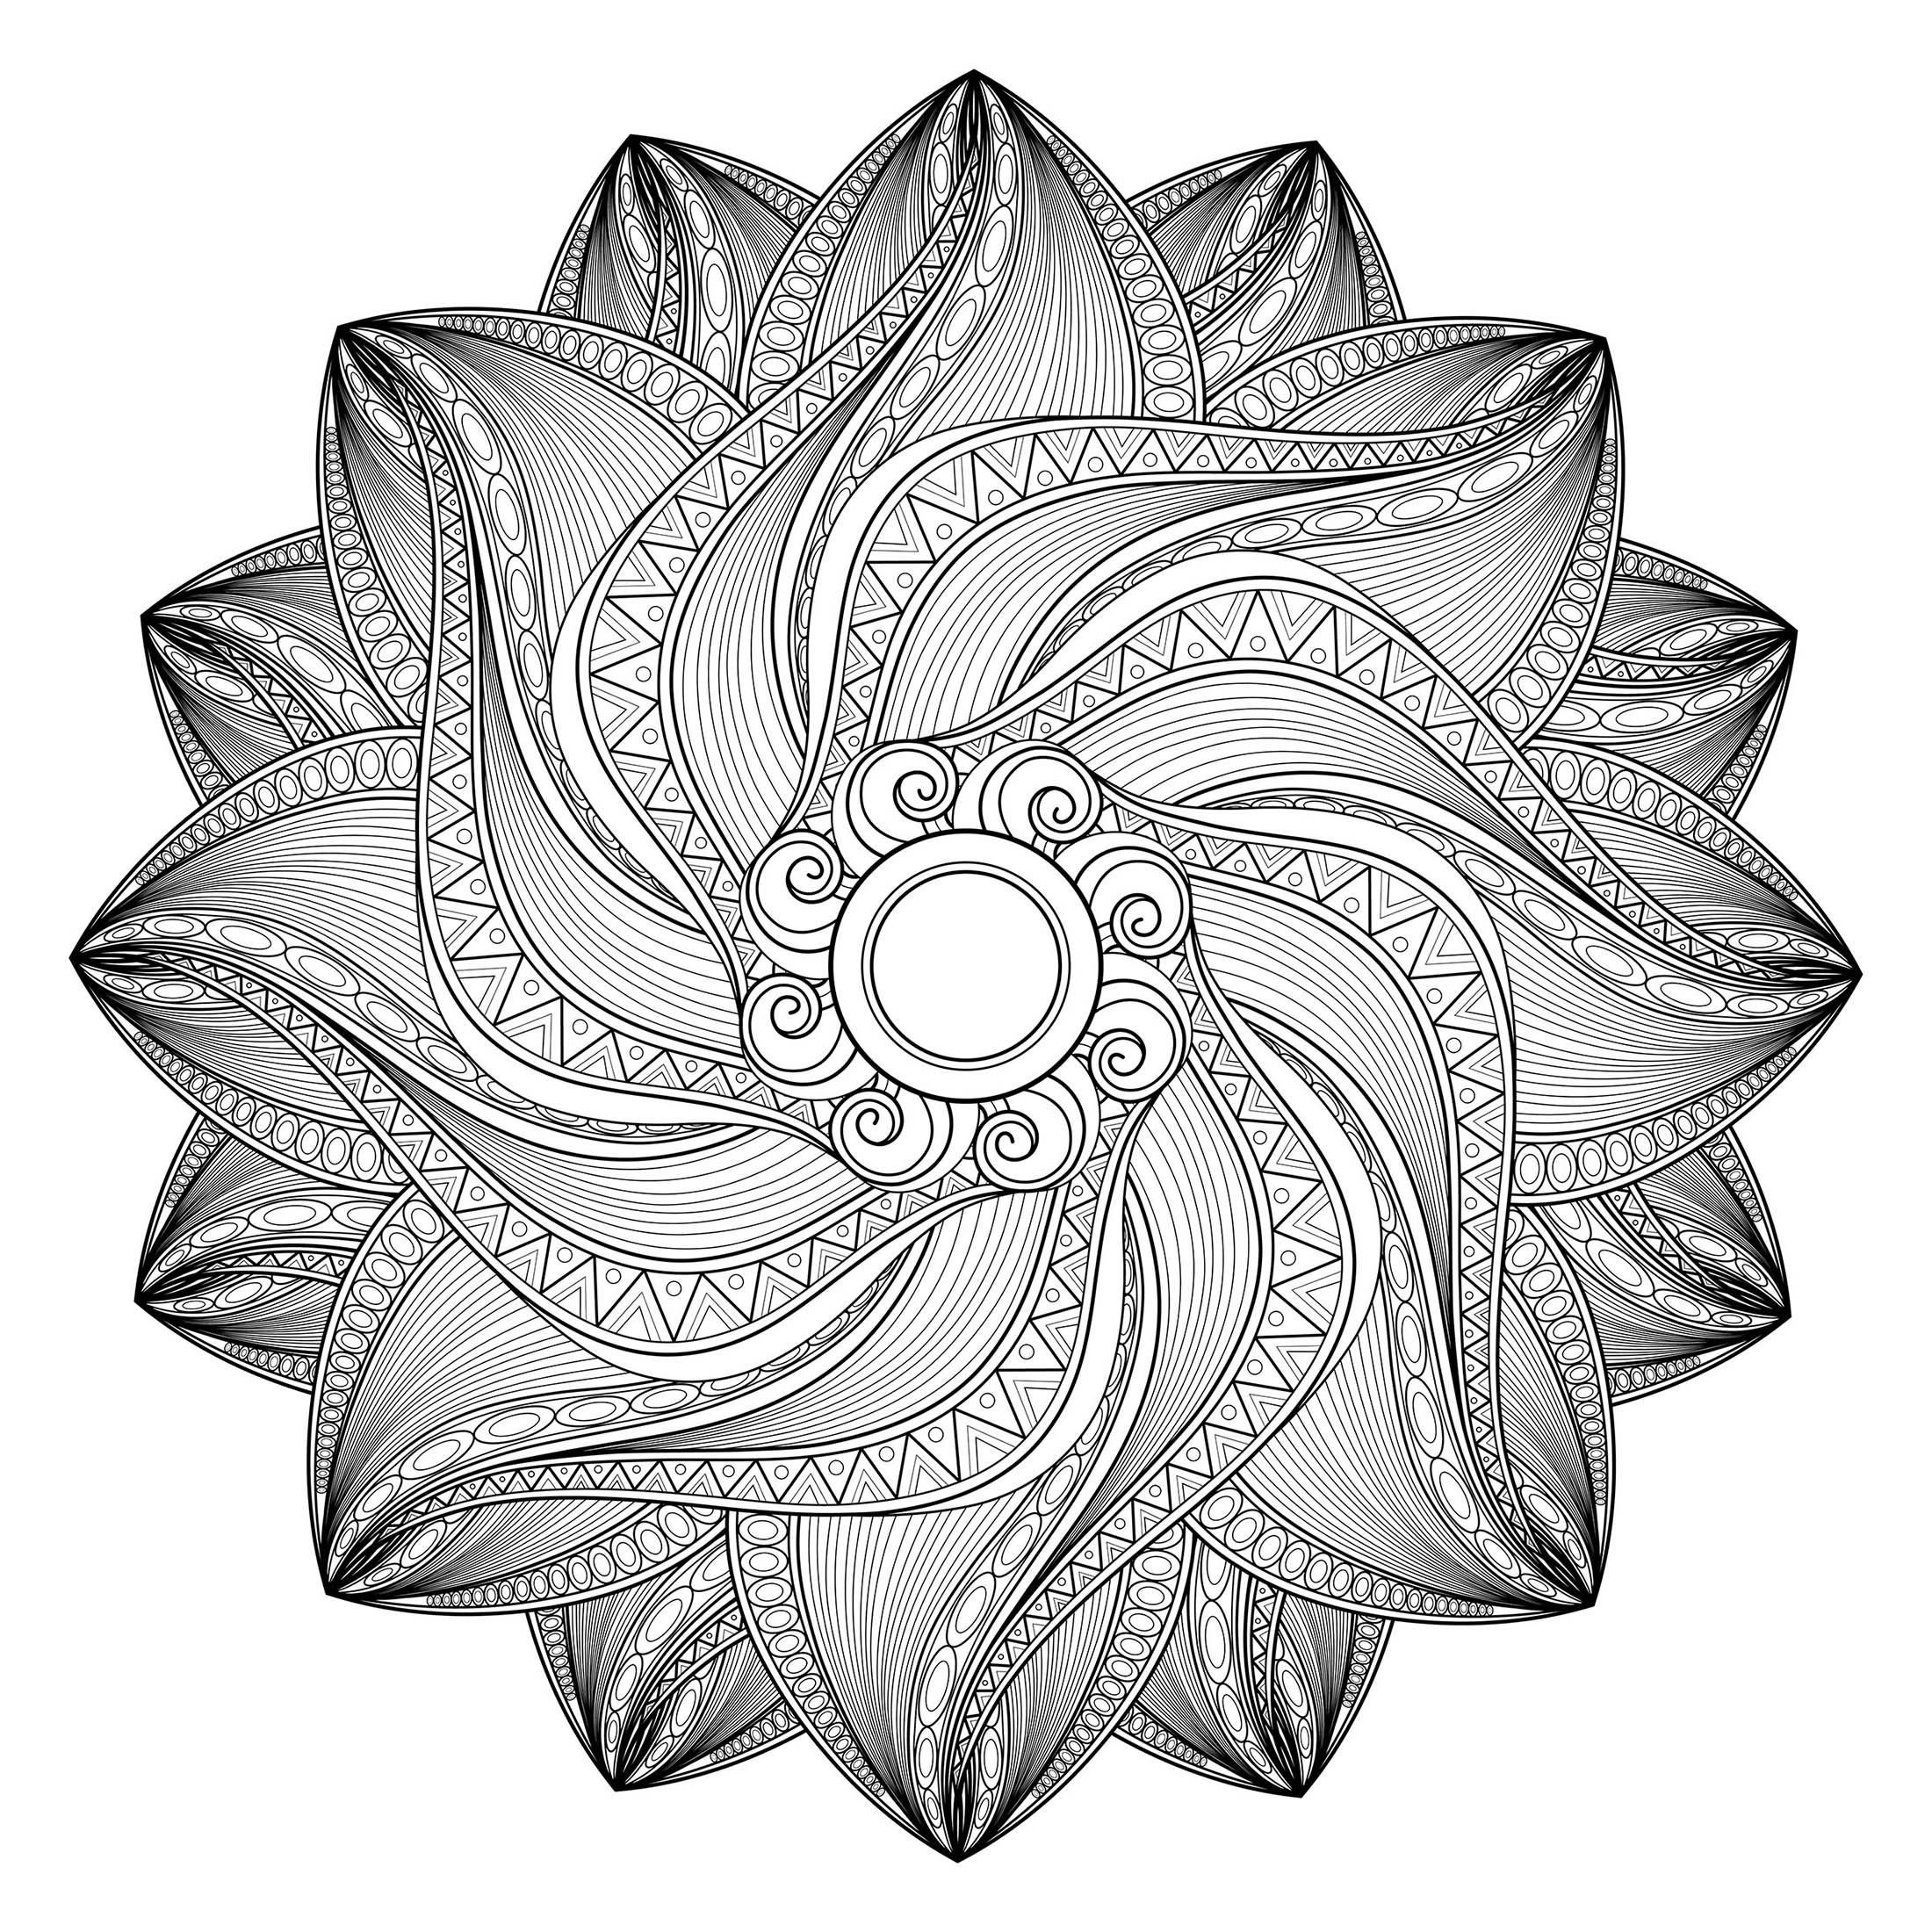 Difficult Flower Coloring Pages - Coloring Home | 2200x2200